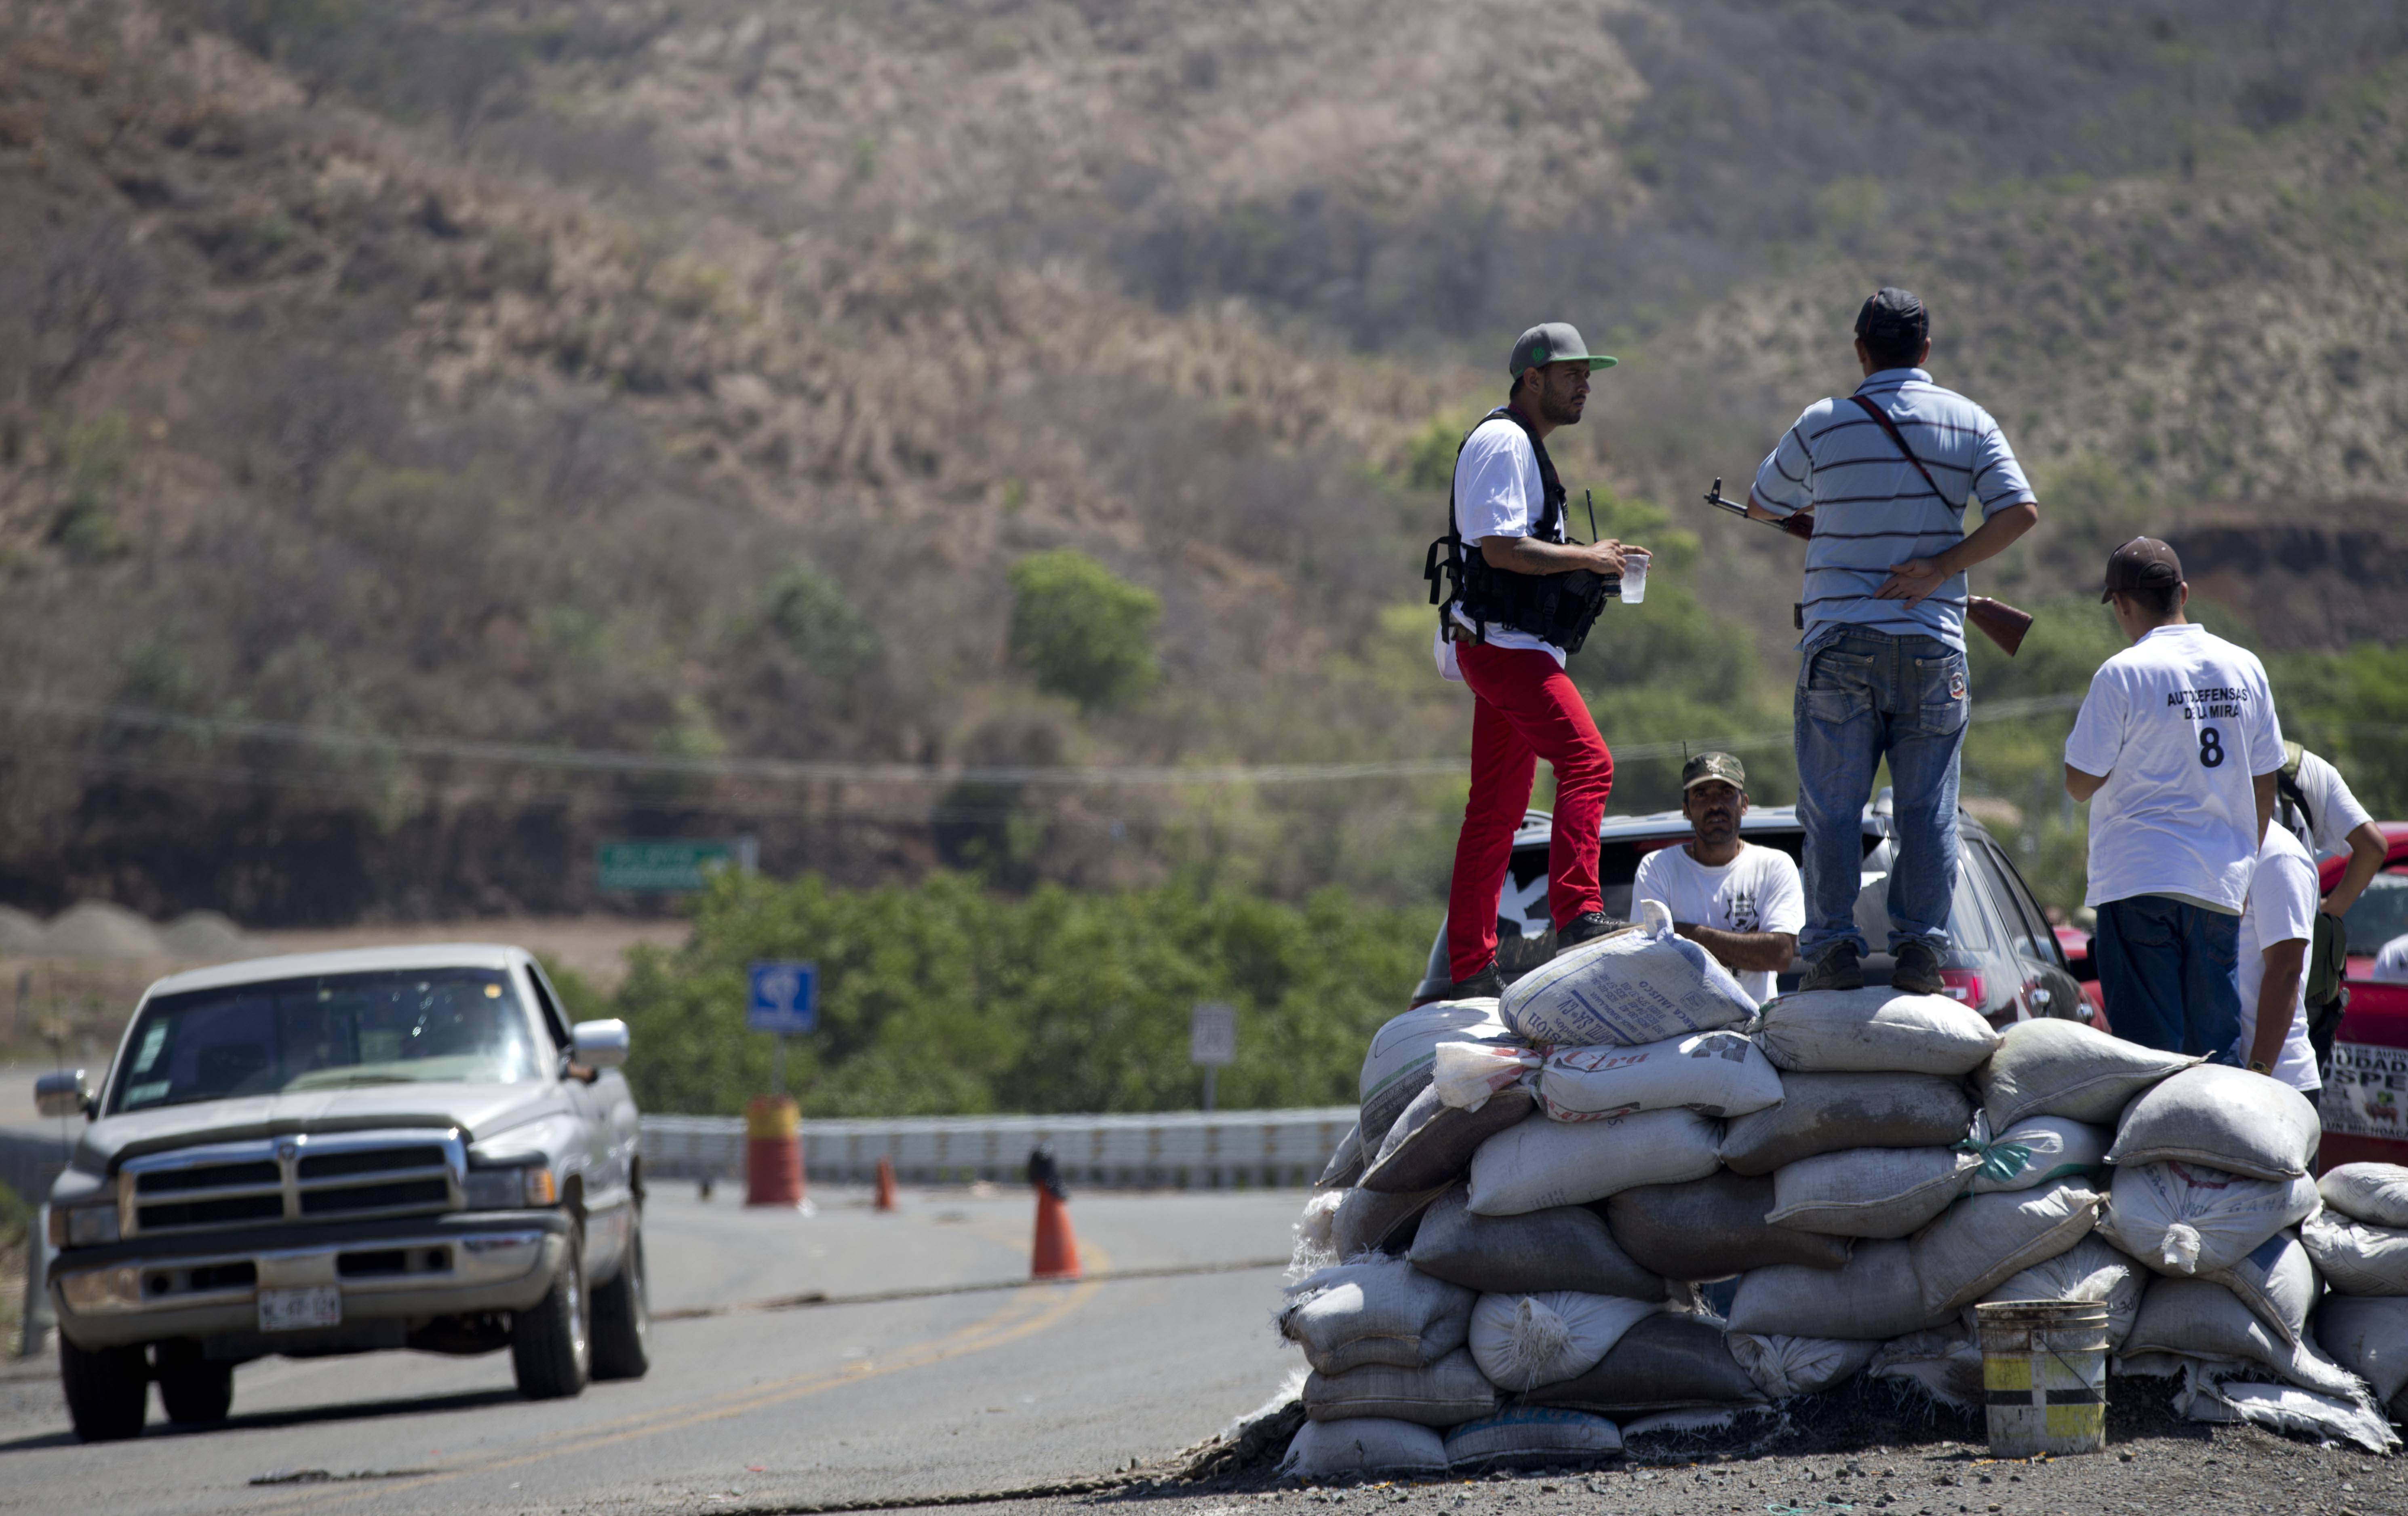 Armed men belonging to the Self-Defense Council of Michoacan, (CAM), stand guard at a checkpoint set up by the vigilantes in Chuquiapan, on the outskirts of the seaport of Lazaro Cardenas, in western Mexico. Mexico was once the top location for U.S. students studying in Latin America, with so many economic and familial ties between the two neighbors. But the numbers dropped with the spike in drug violence.